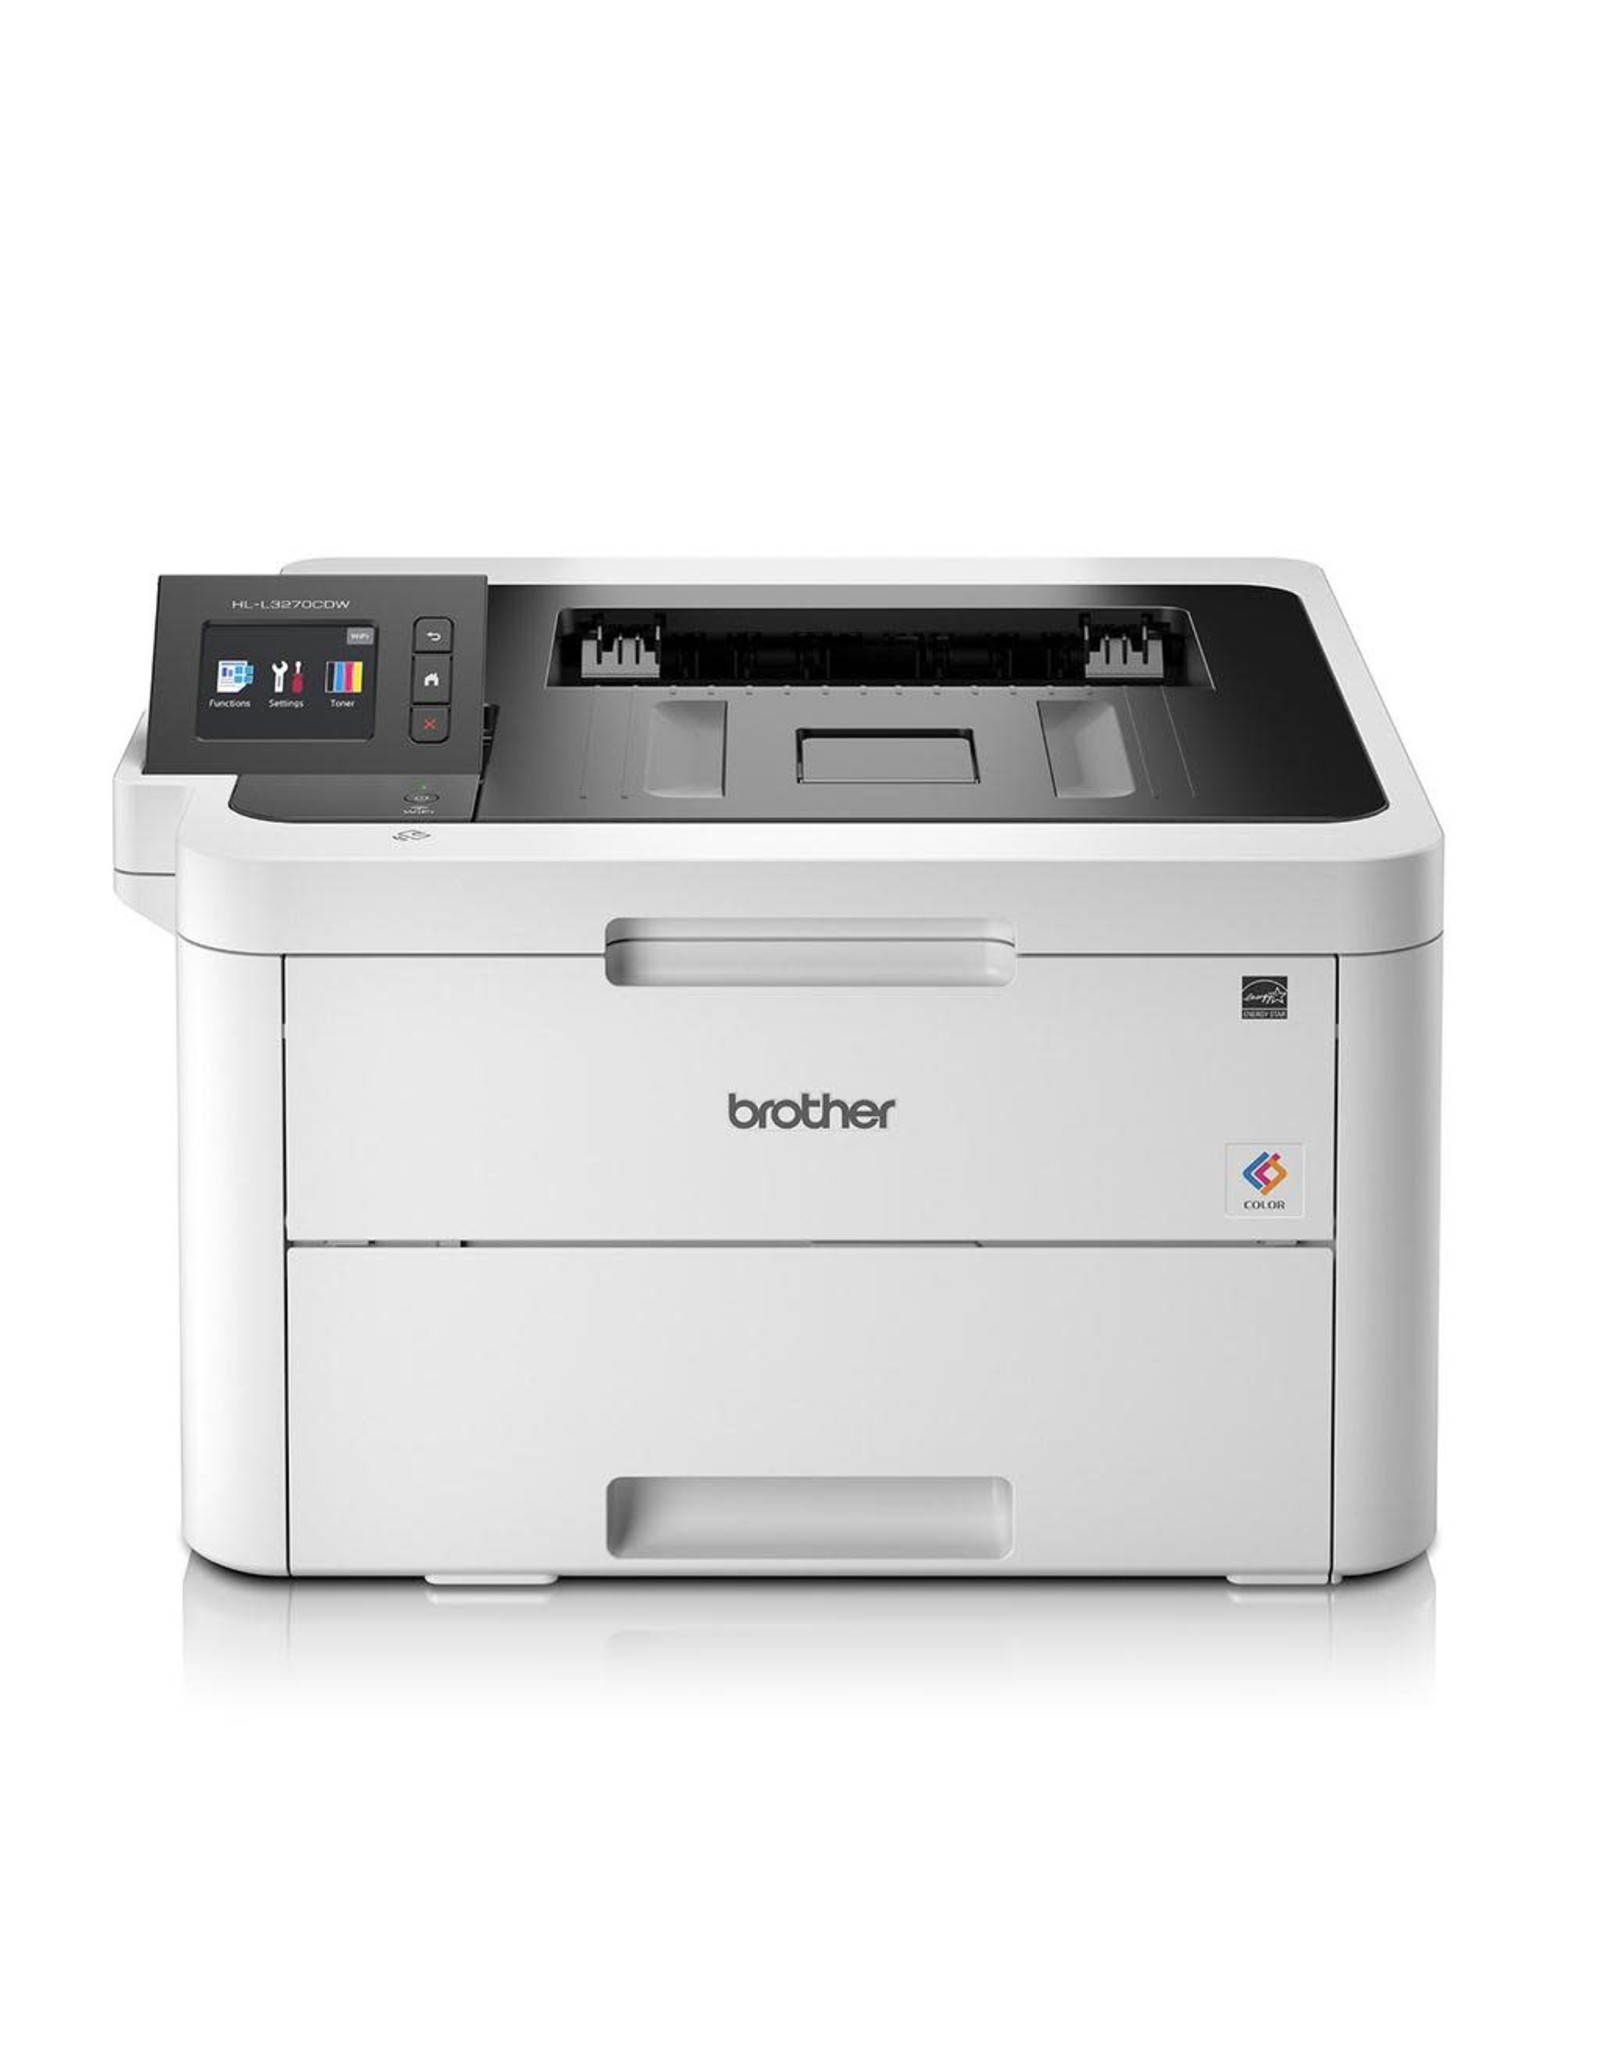 Brother Brother HL-L3270CDW Colour Laser Printer 24PPM Colour & Monochrome/Wireless & Ethernet Duplex AIRPRINT & NFC